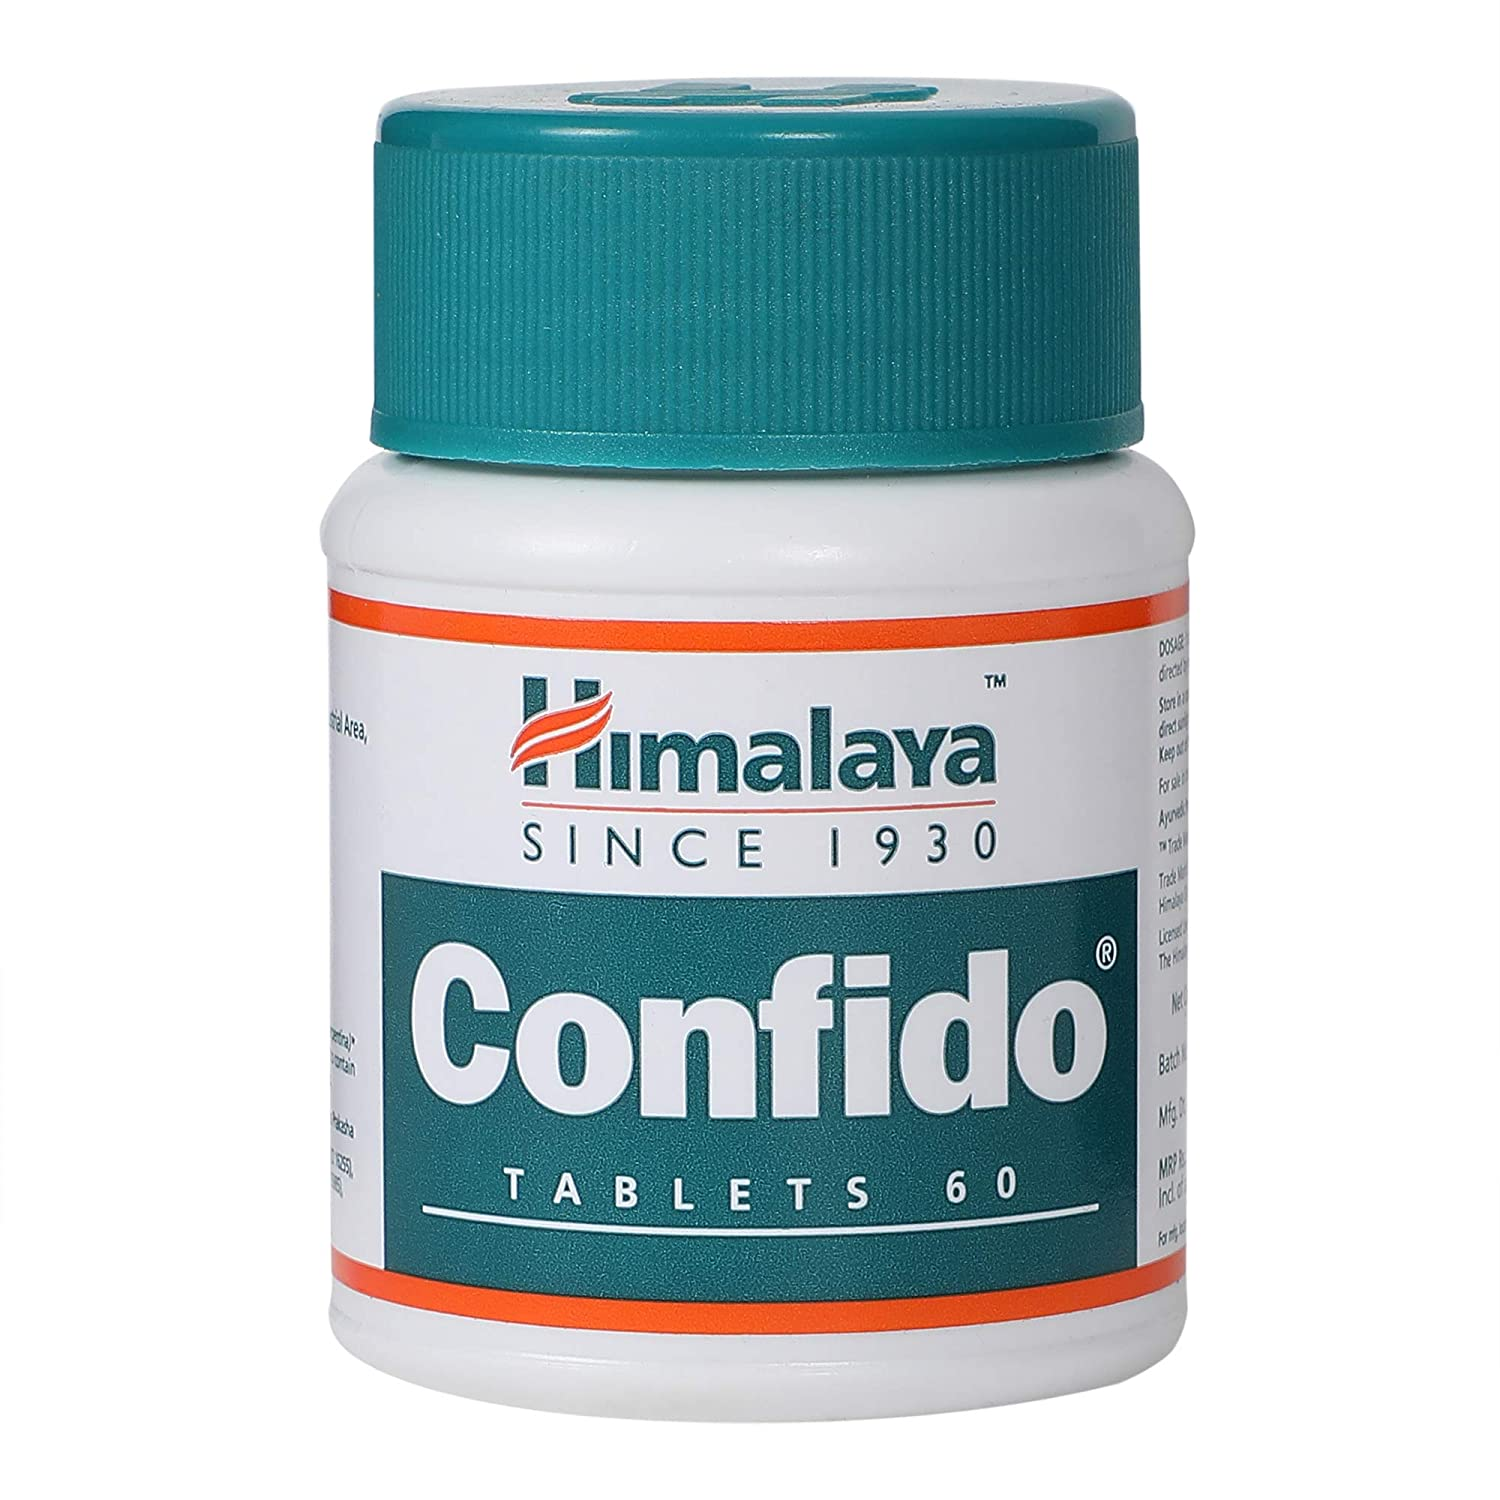 Buy Himalaya Confido Tablets - 60 Counts Online at Low Prices in India -  Amazon.in